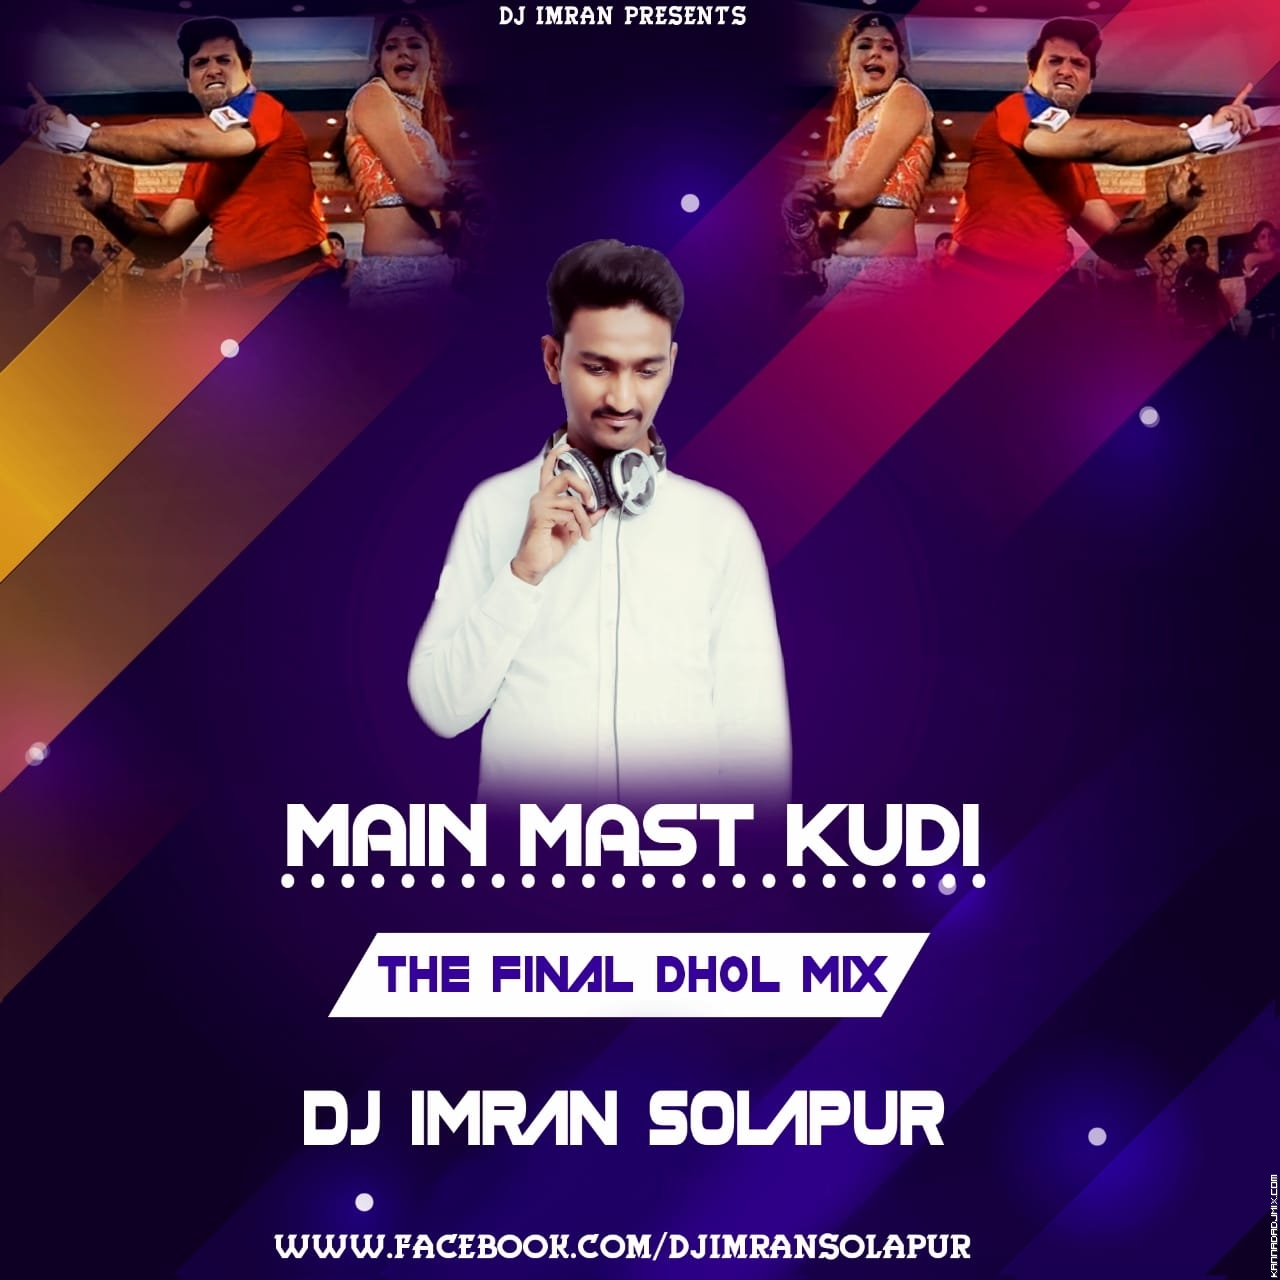 Main Mast Kudi (The Final Dhol Mix) DJ Imran Solapur.mp3